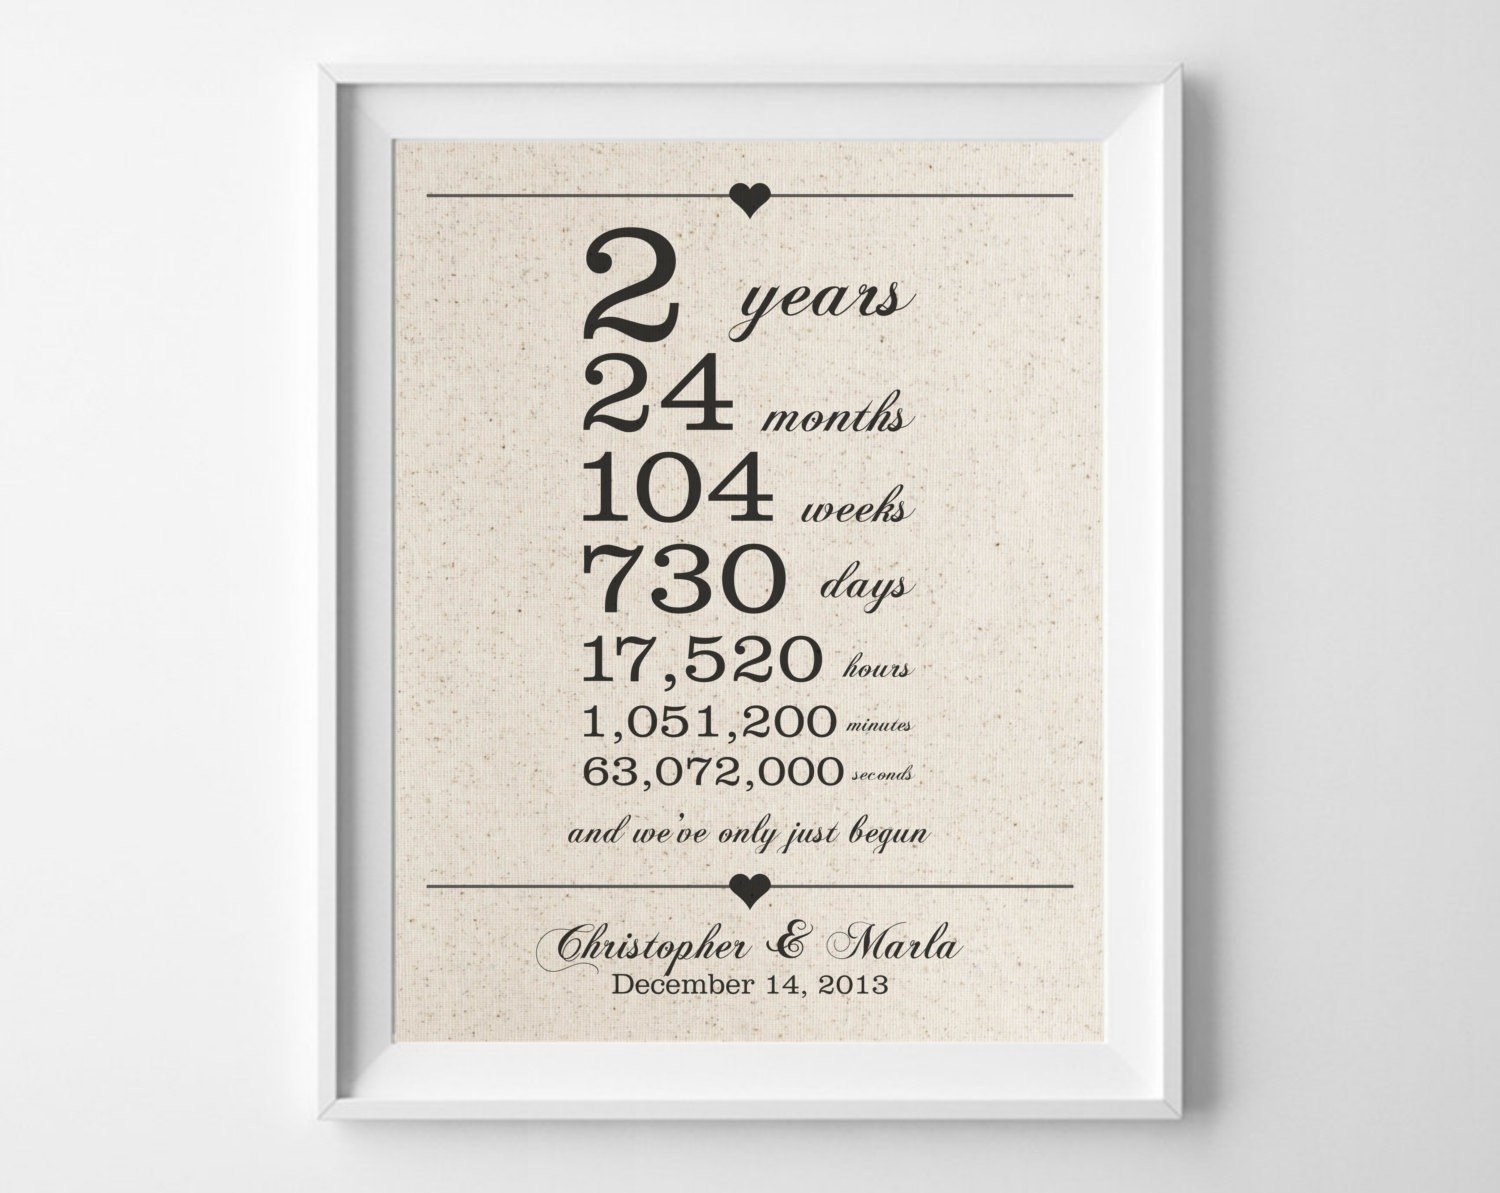 10 Awesome 14 Year Anniversary Gift Ideas 14 wedding anniversary gift ideas new 2 years to her cotton 2020